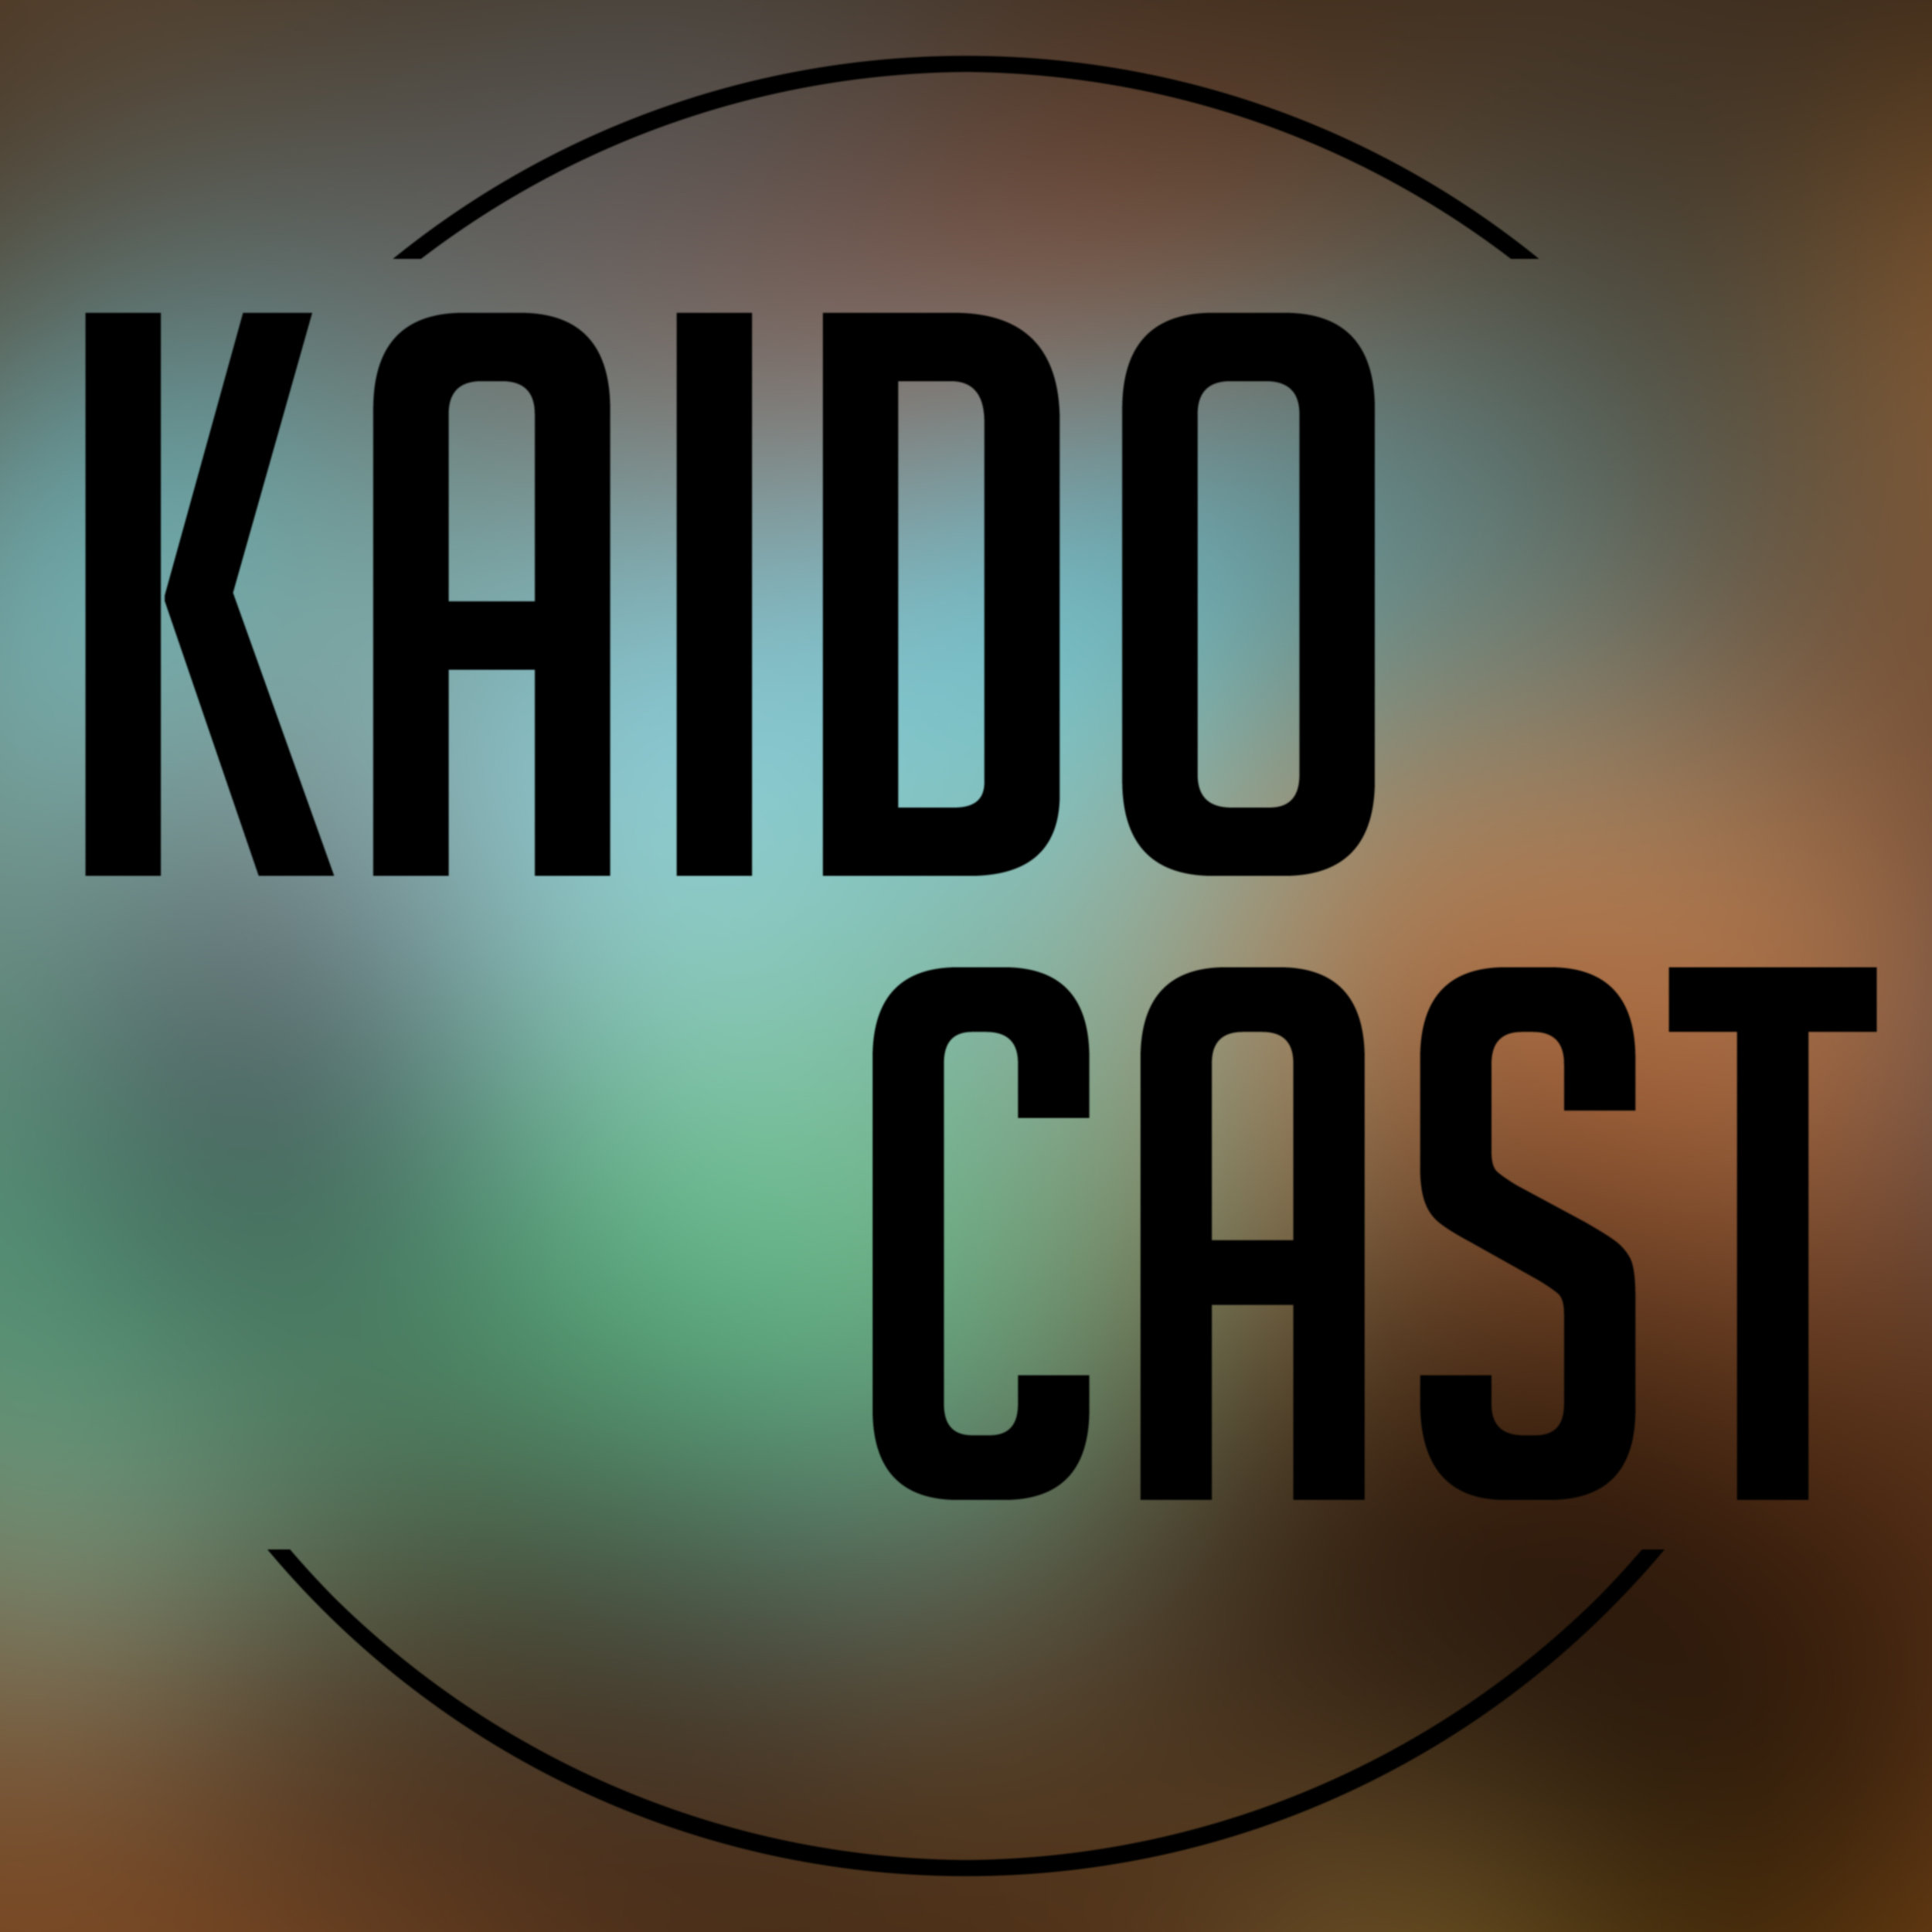 KAIDO Cast 01 - I Pronounce This a Podcast - A Professional Gamesman, a Streamer, and a Hardware Store Associate. Let's do this!